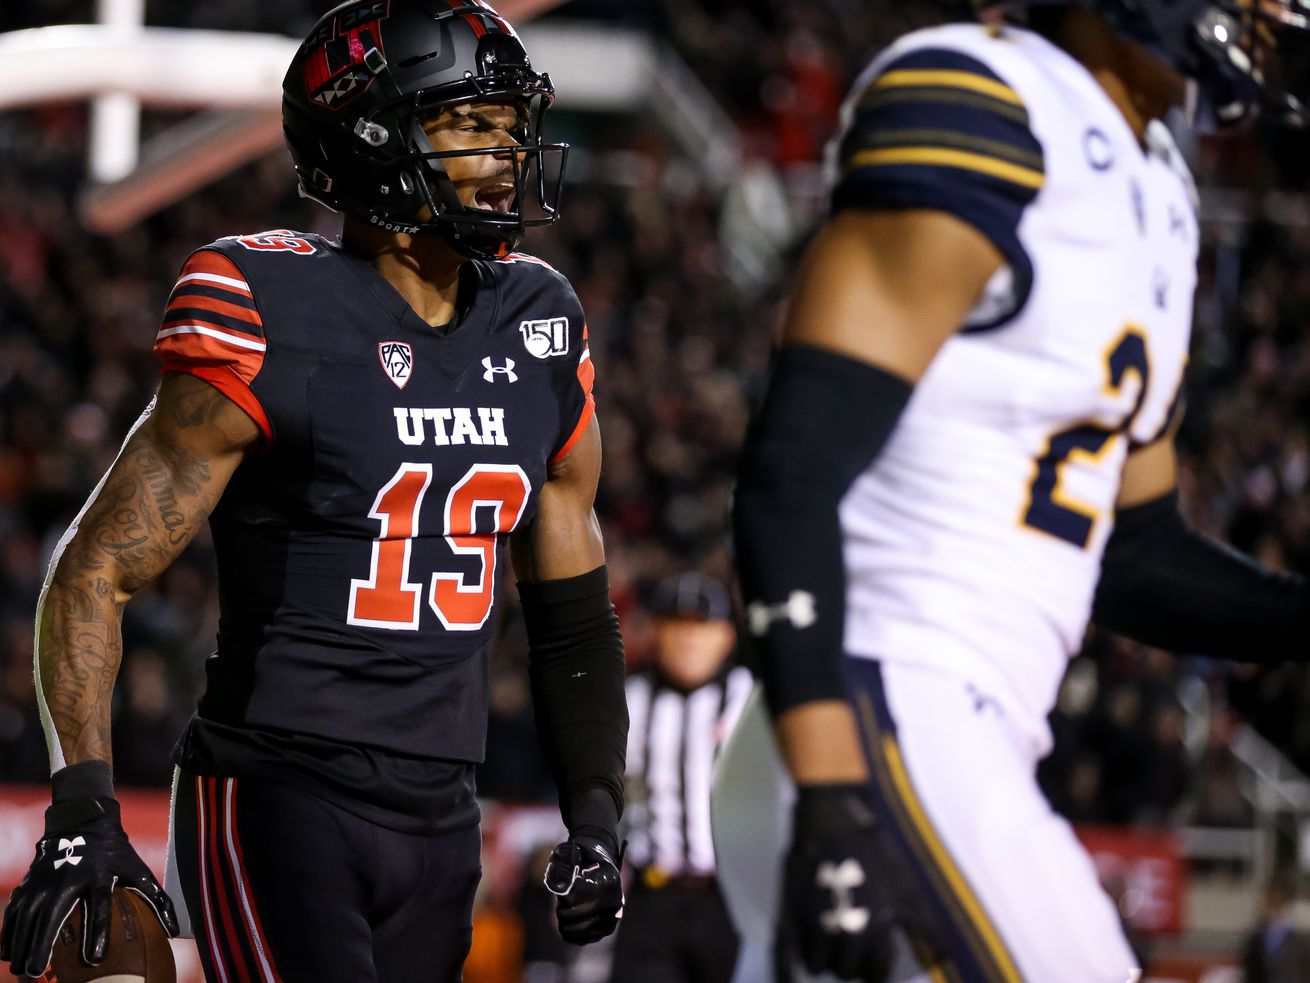 Utah Utes wide receiver Bryan Thompson (19) celebrates after scoring a touchdown on a 40-yard pass from quarterback Tyler Huntley (1), putting the Utes up 14-0 after the PAT, during the game against the California Golden Bears at Rice-Eccles Stadium in Salt Lake City on Saturday, Oct. 26, 2019.